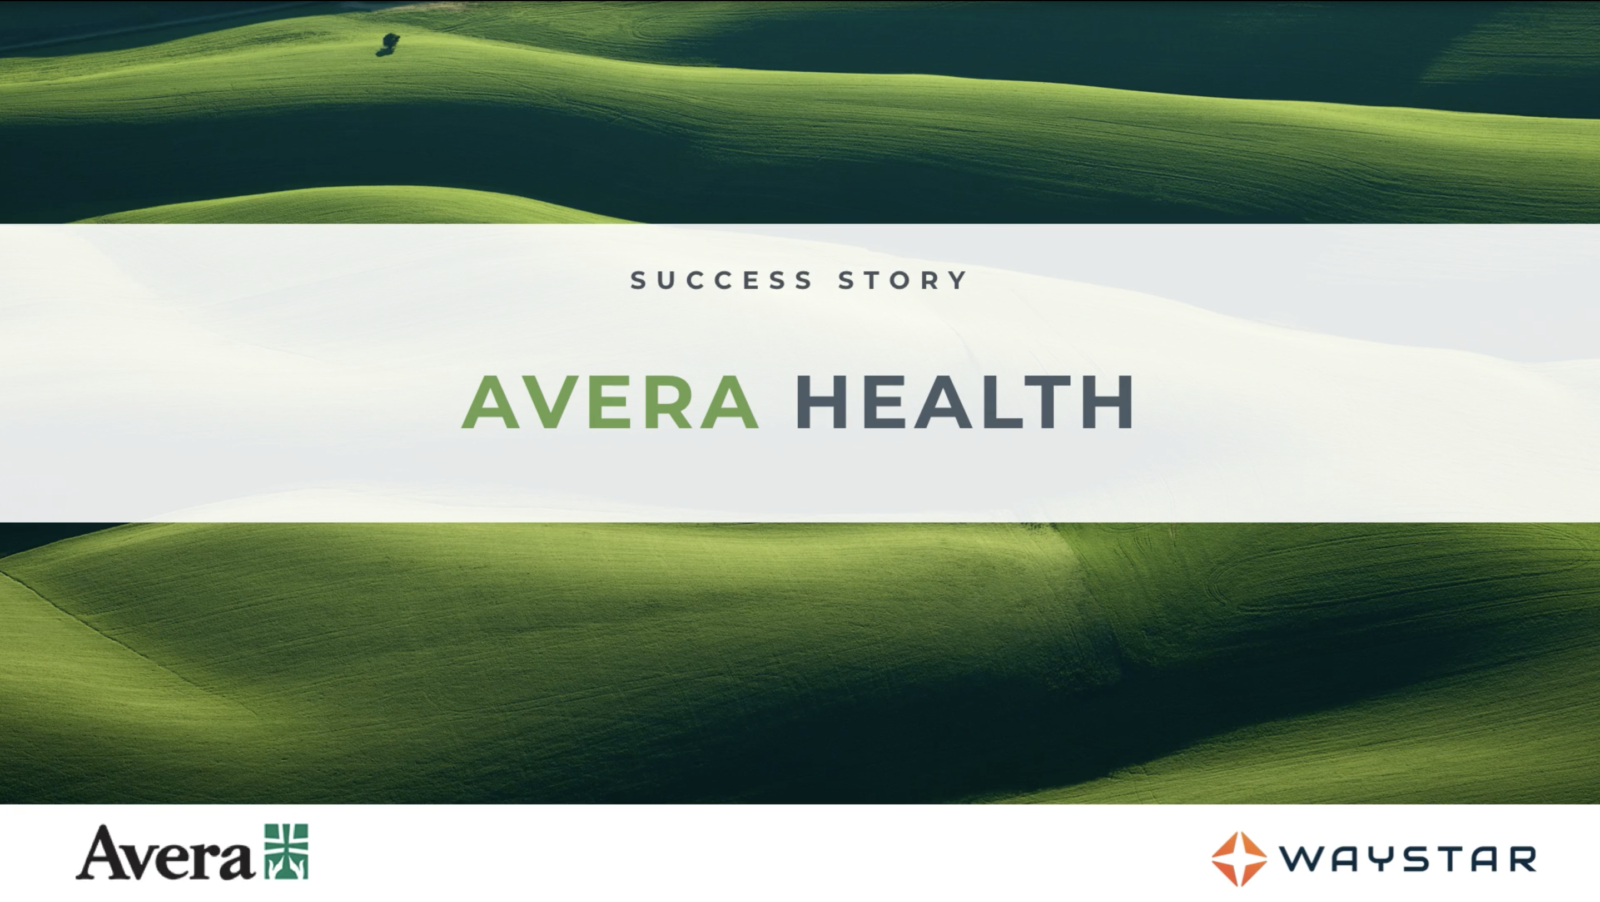 Success story: Avera Health